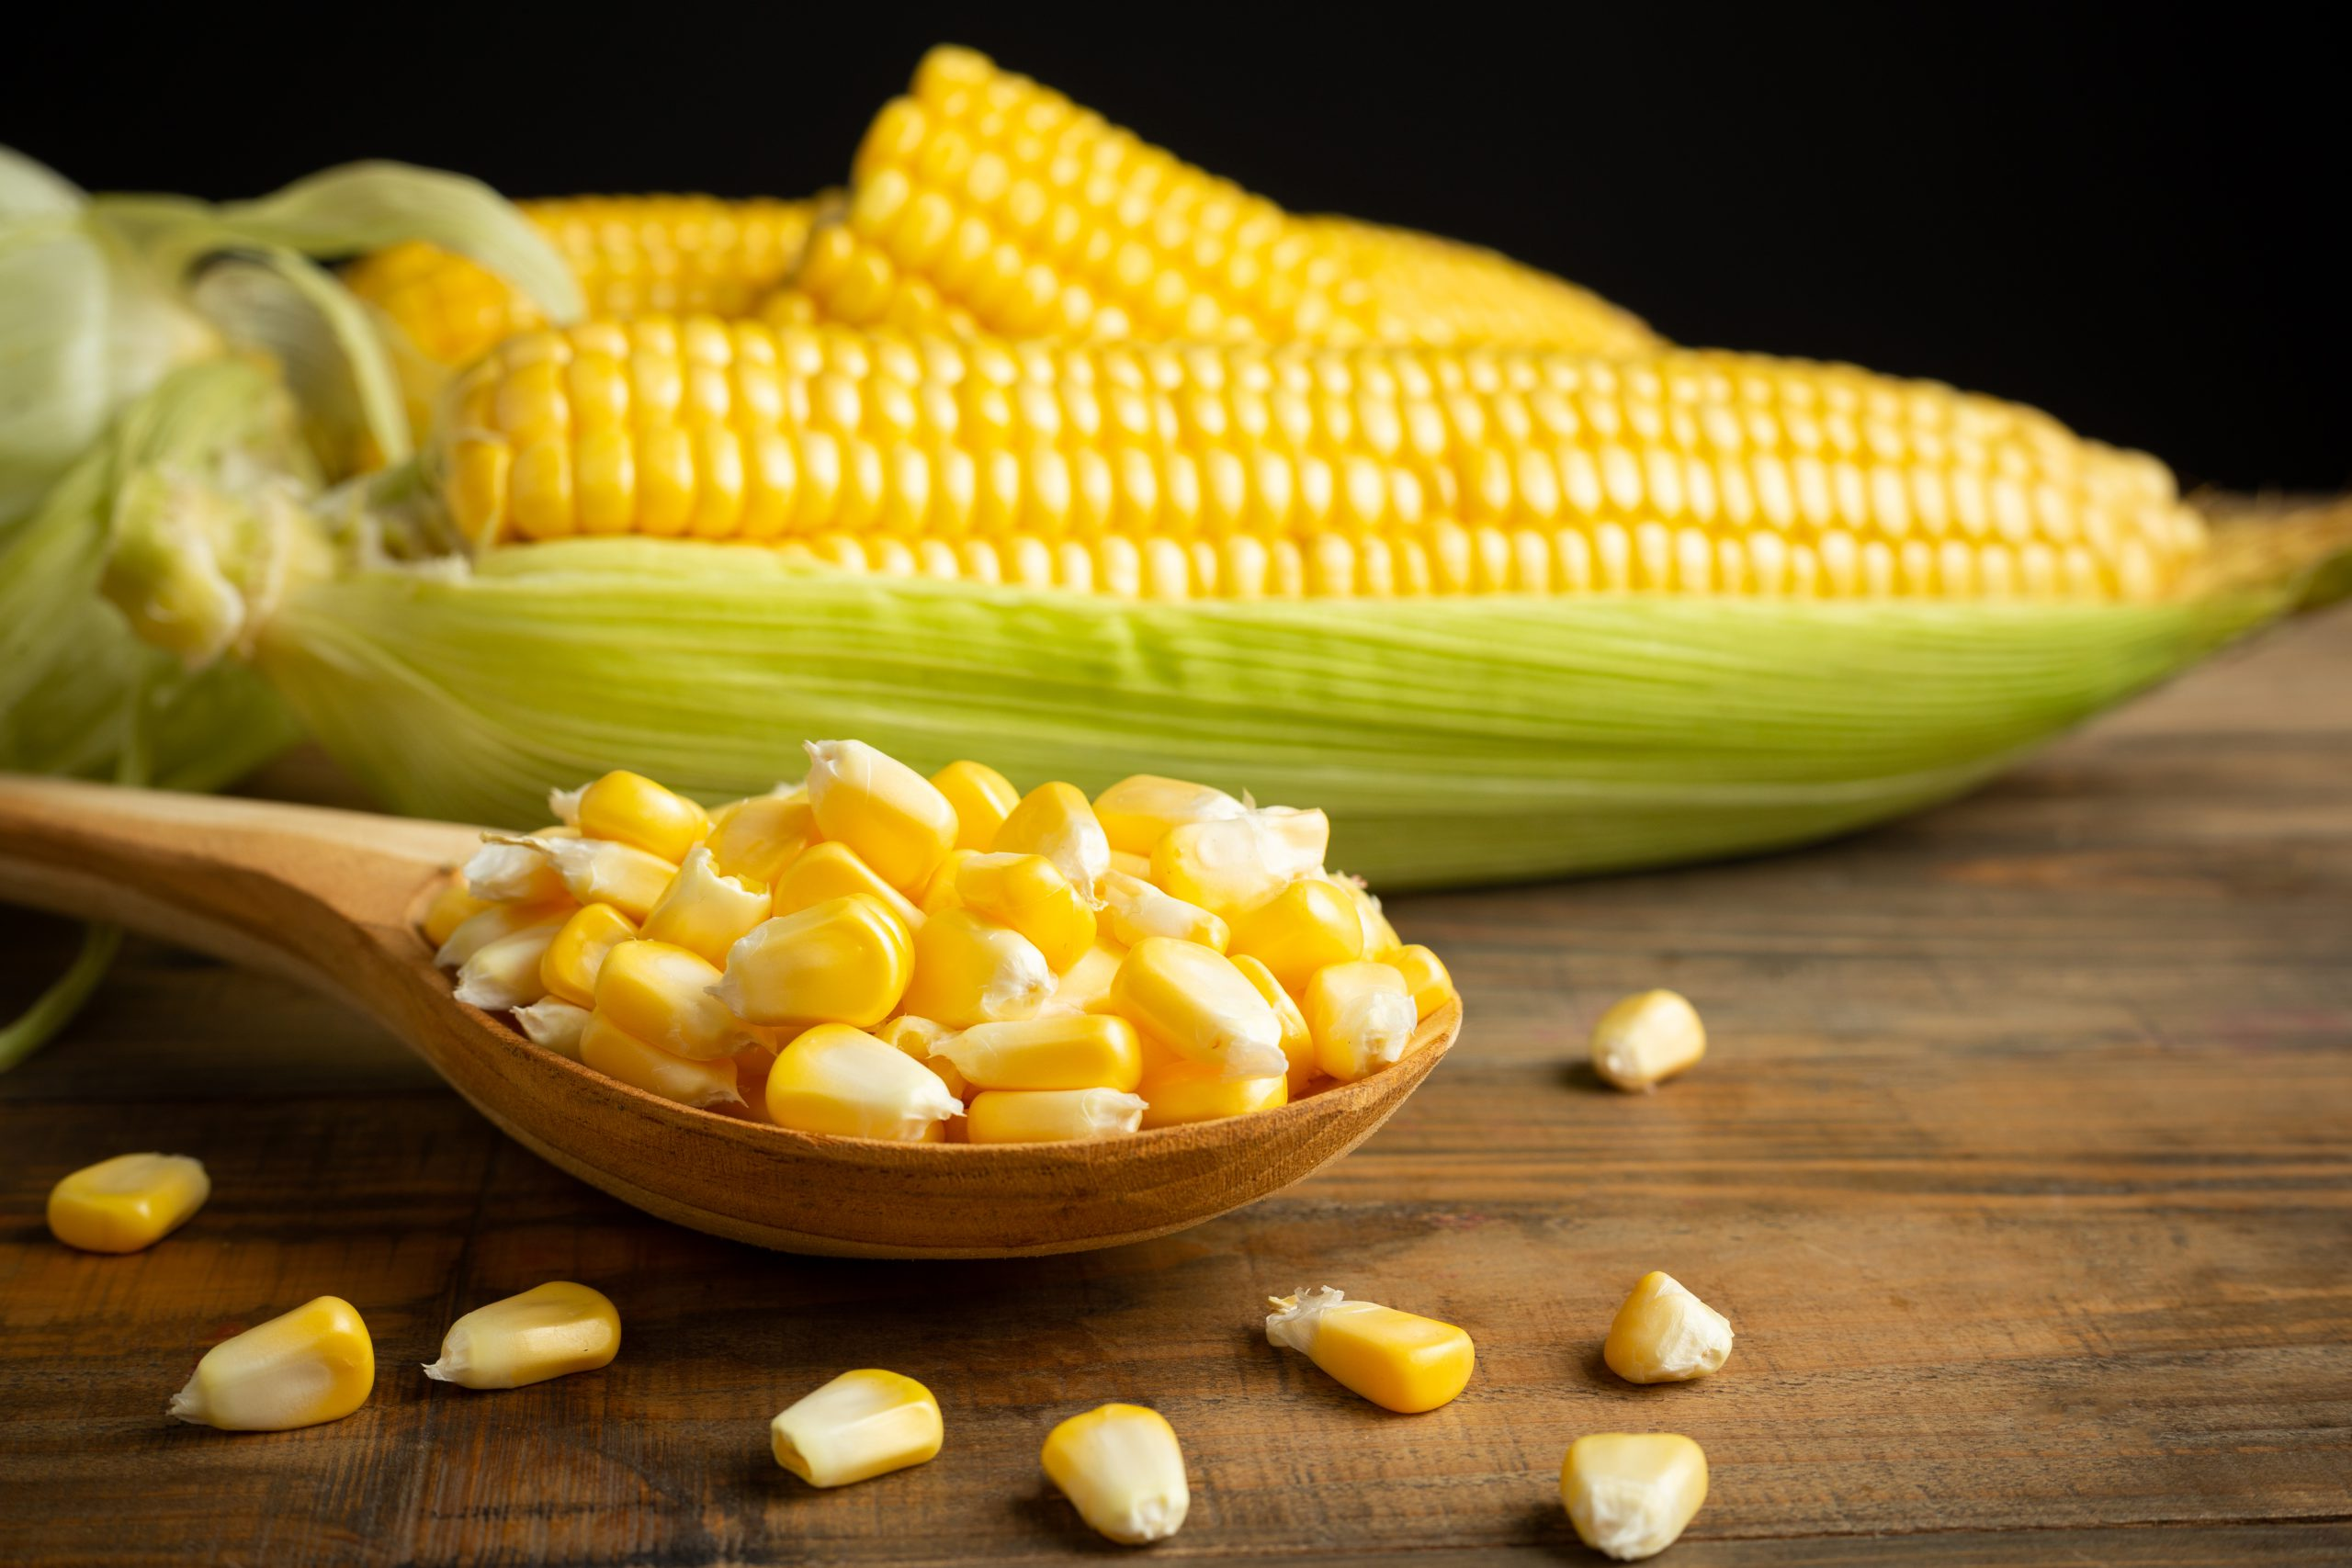 seeds and sweet corn on wooden table.